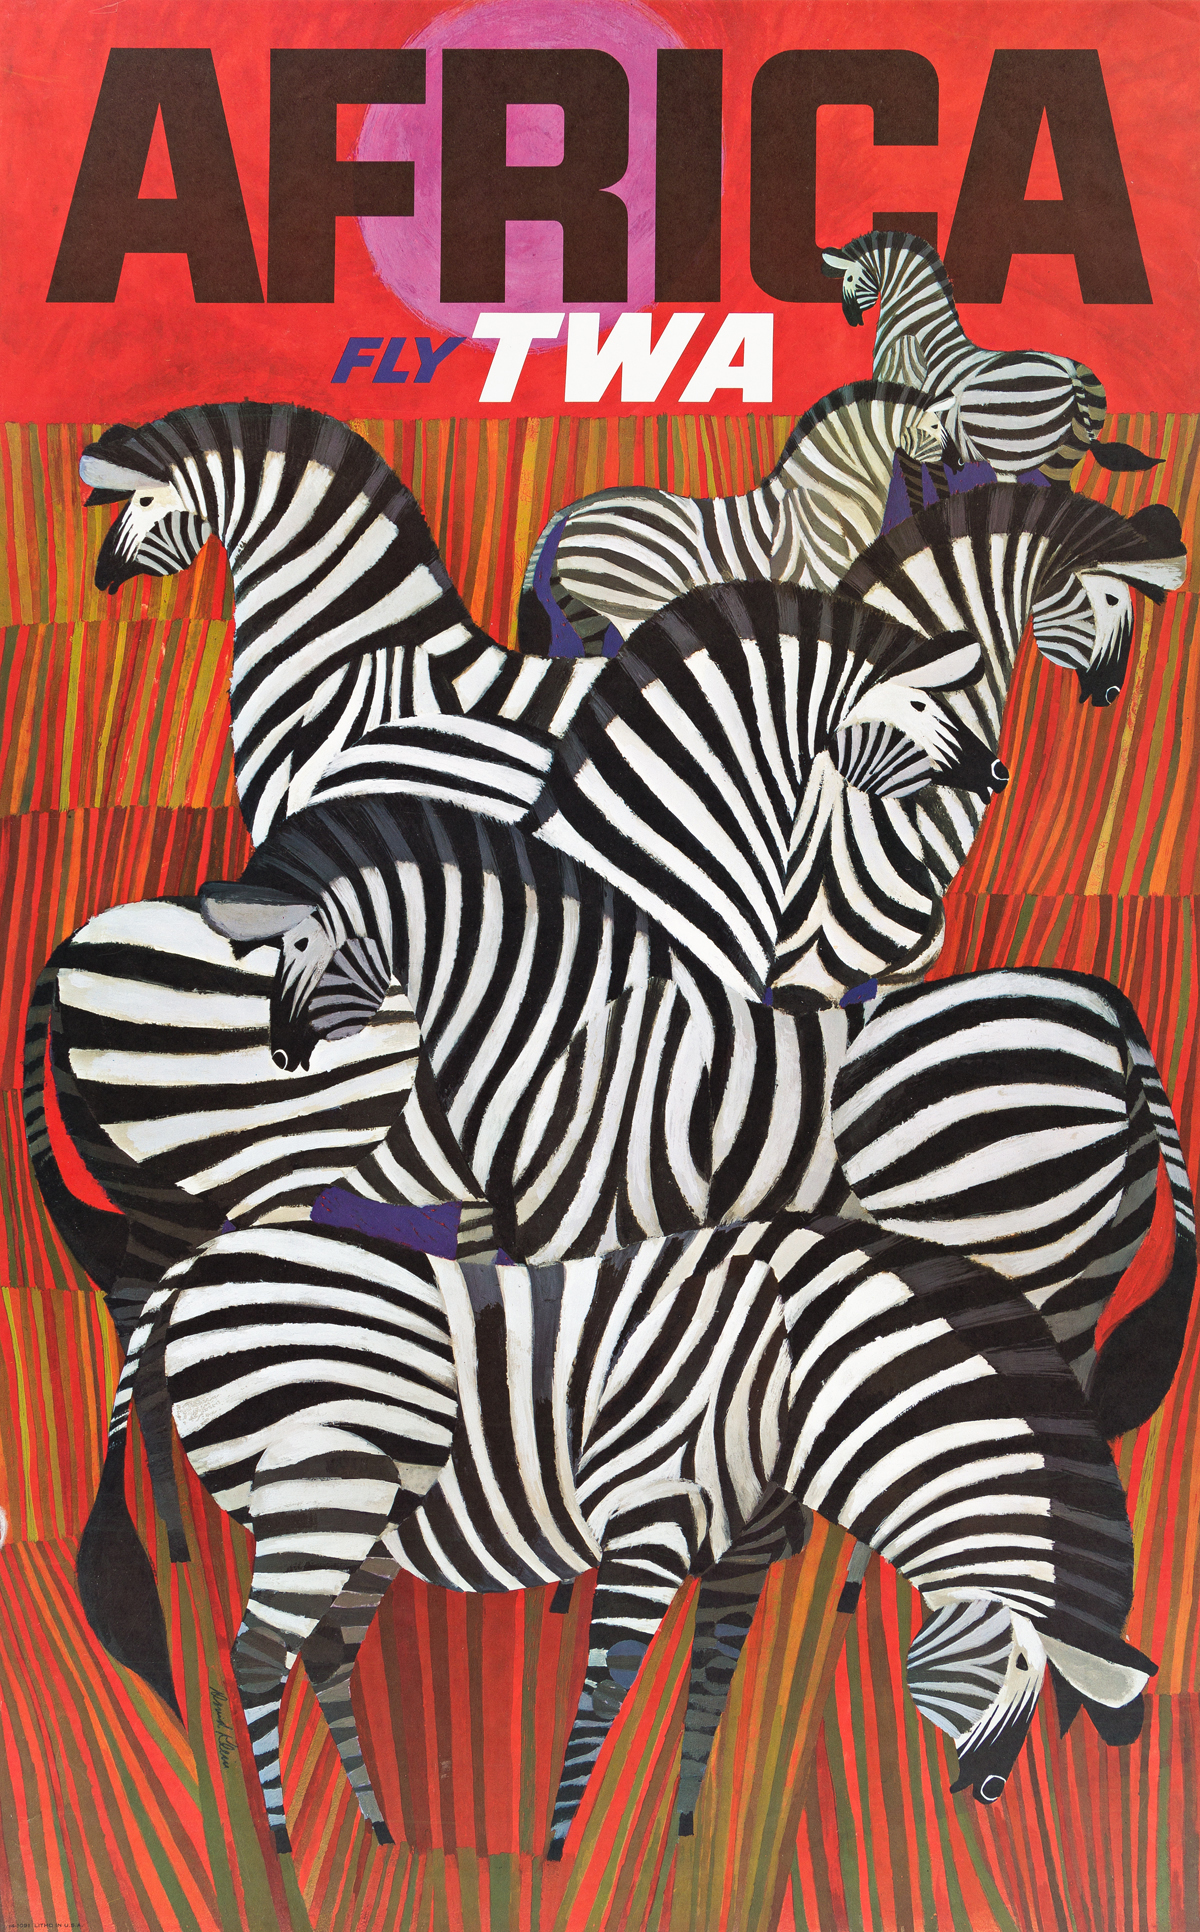 DAVID KLEIN (1918-2005).  FLY TWA. Group of 8 posters. Circa 1960s. Each approximately 39½x24½ inches, 100¼x62¼ cm.